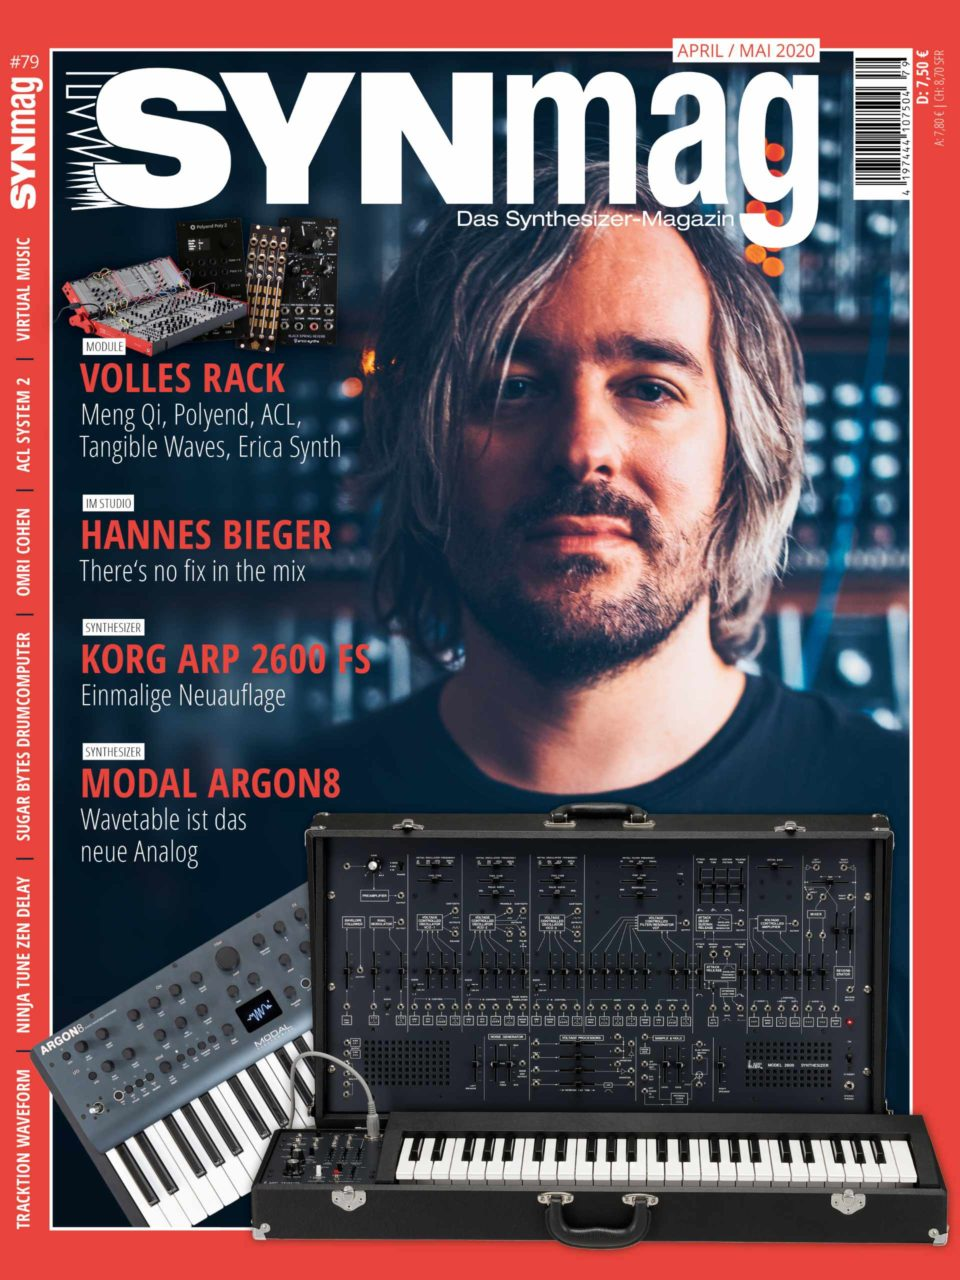 SynMag 79 Synthesizer-Magazin